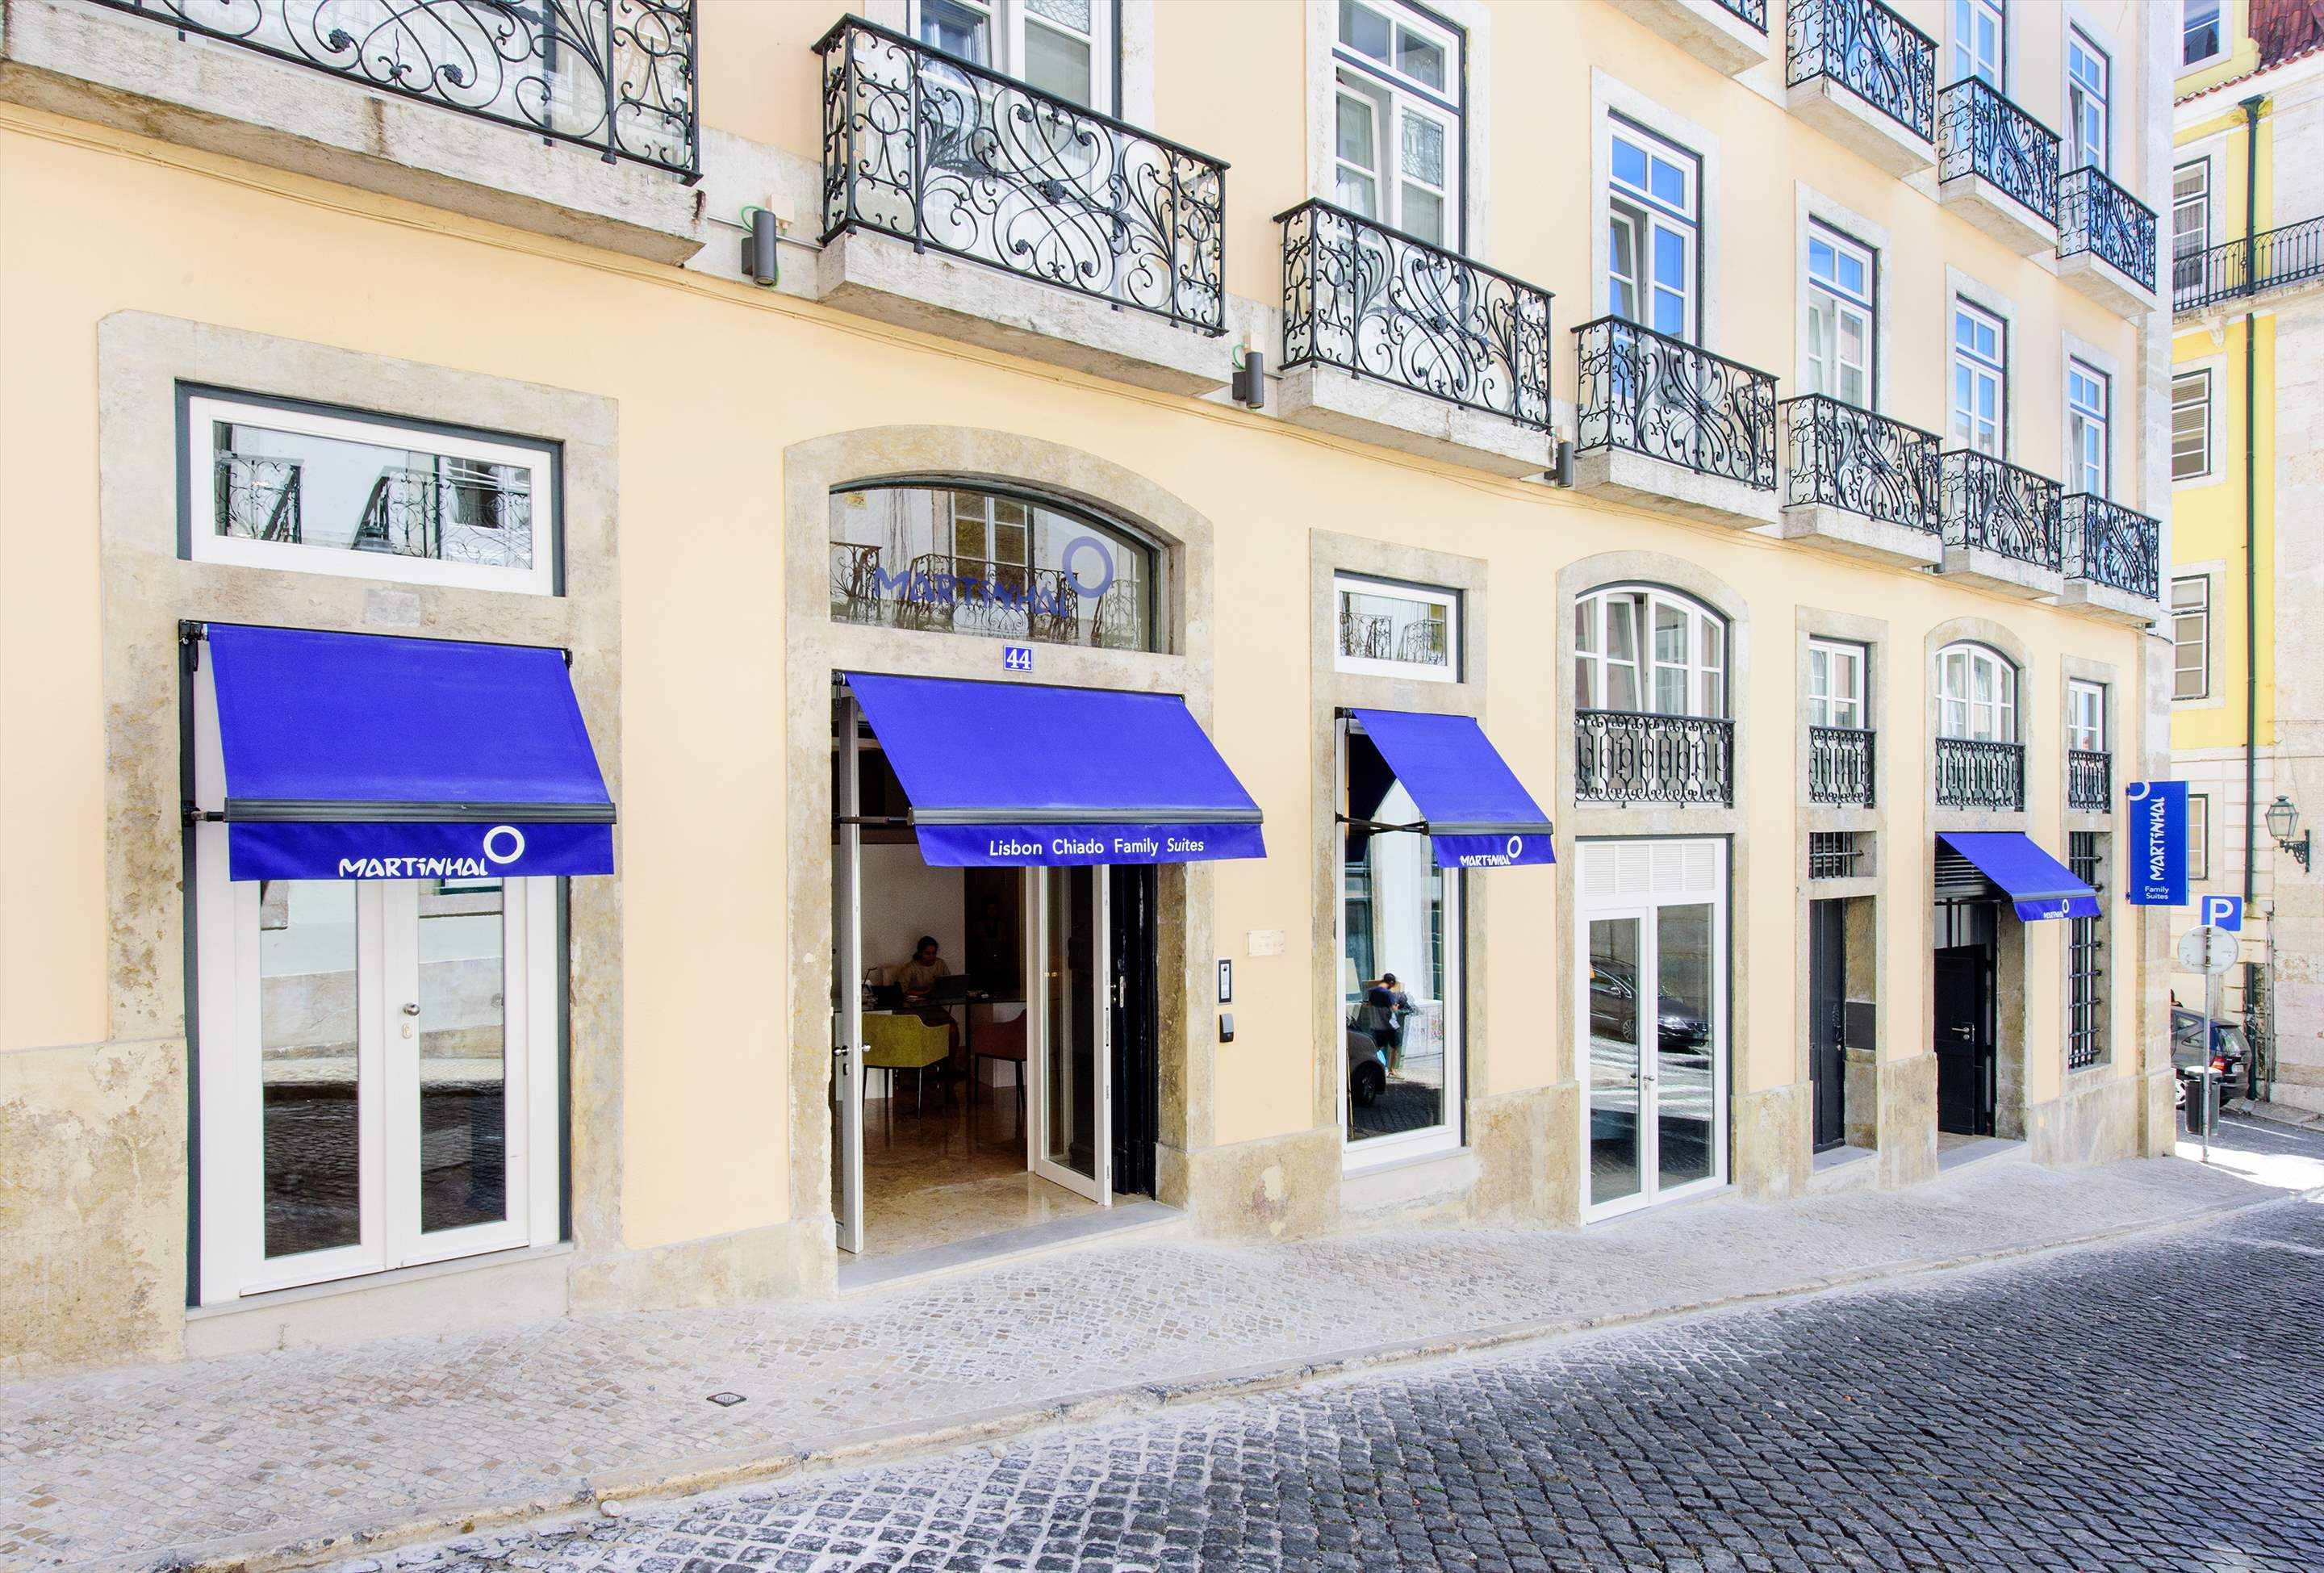 Martinhal Chiado Family Suites, Superior Deluxe Apartment Two Bedrooms, 2 bedroom apartment in Lisbon Coast, Lisbon Photo #9